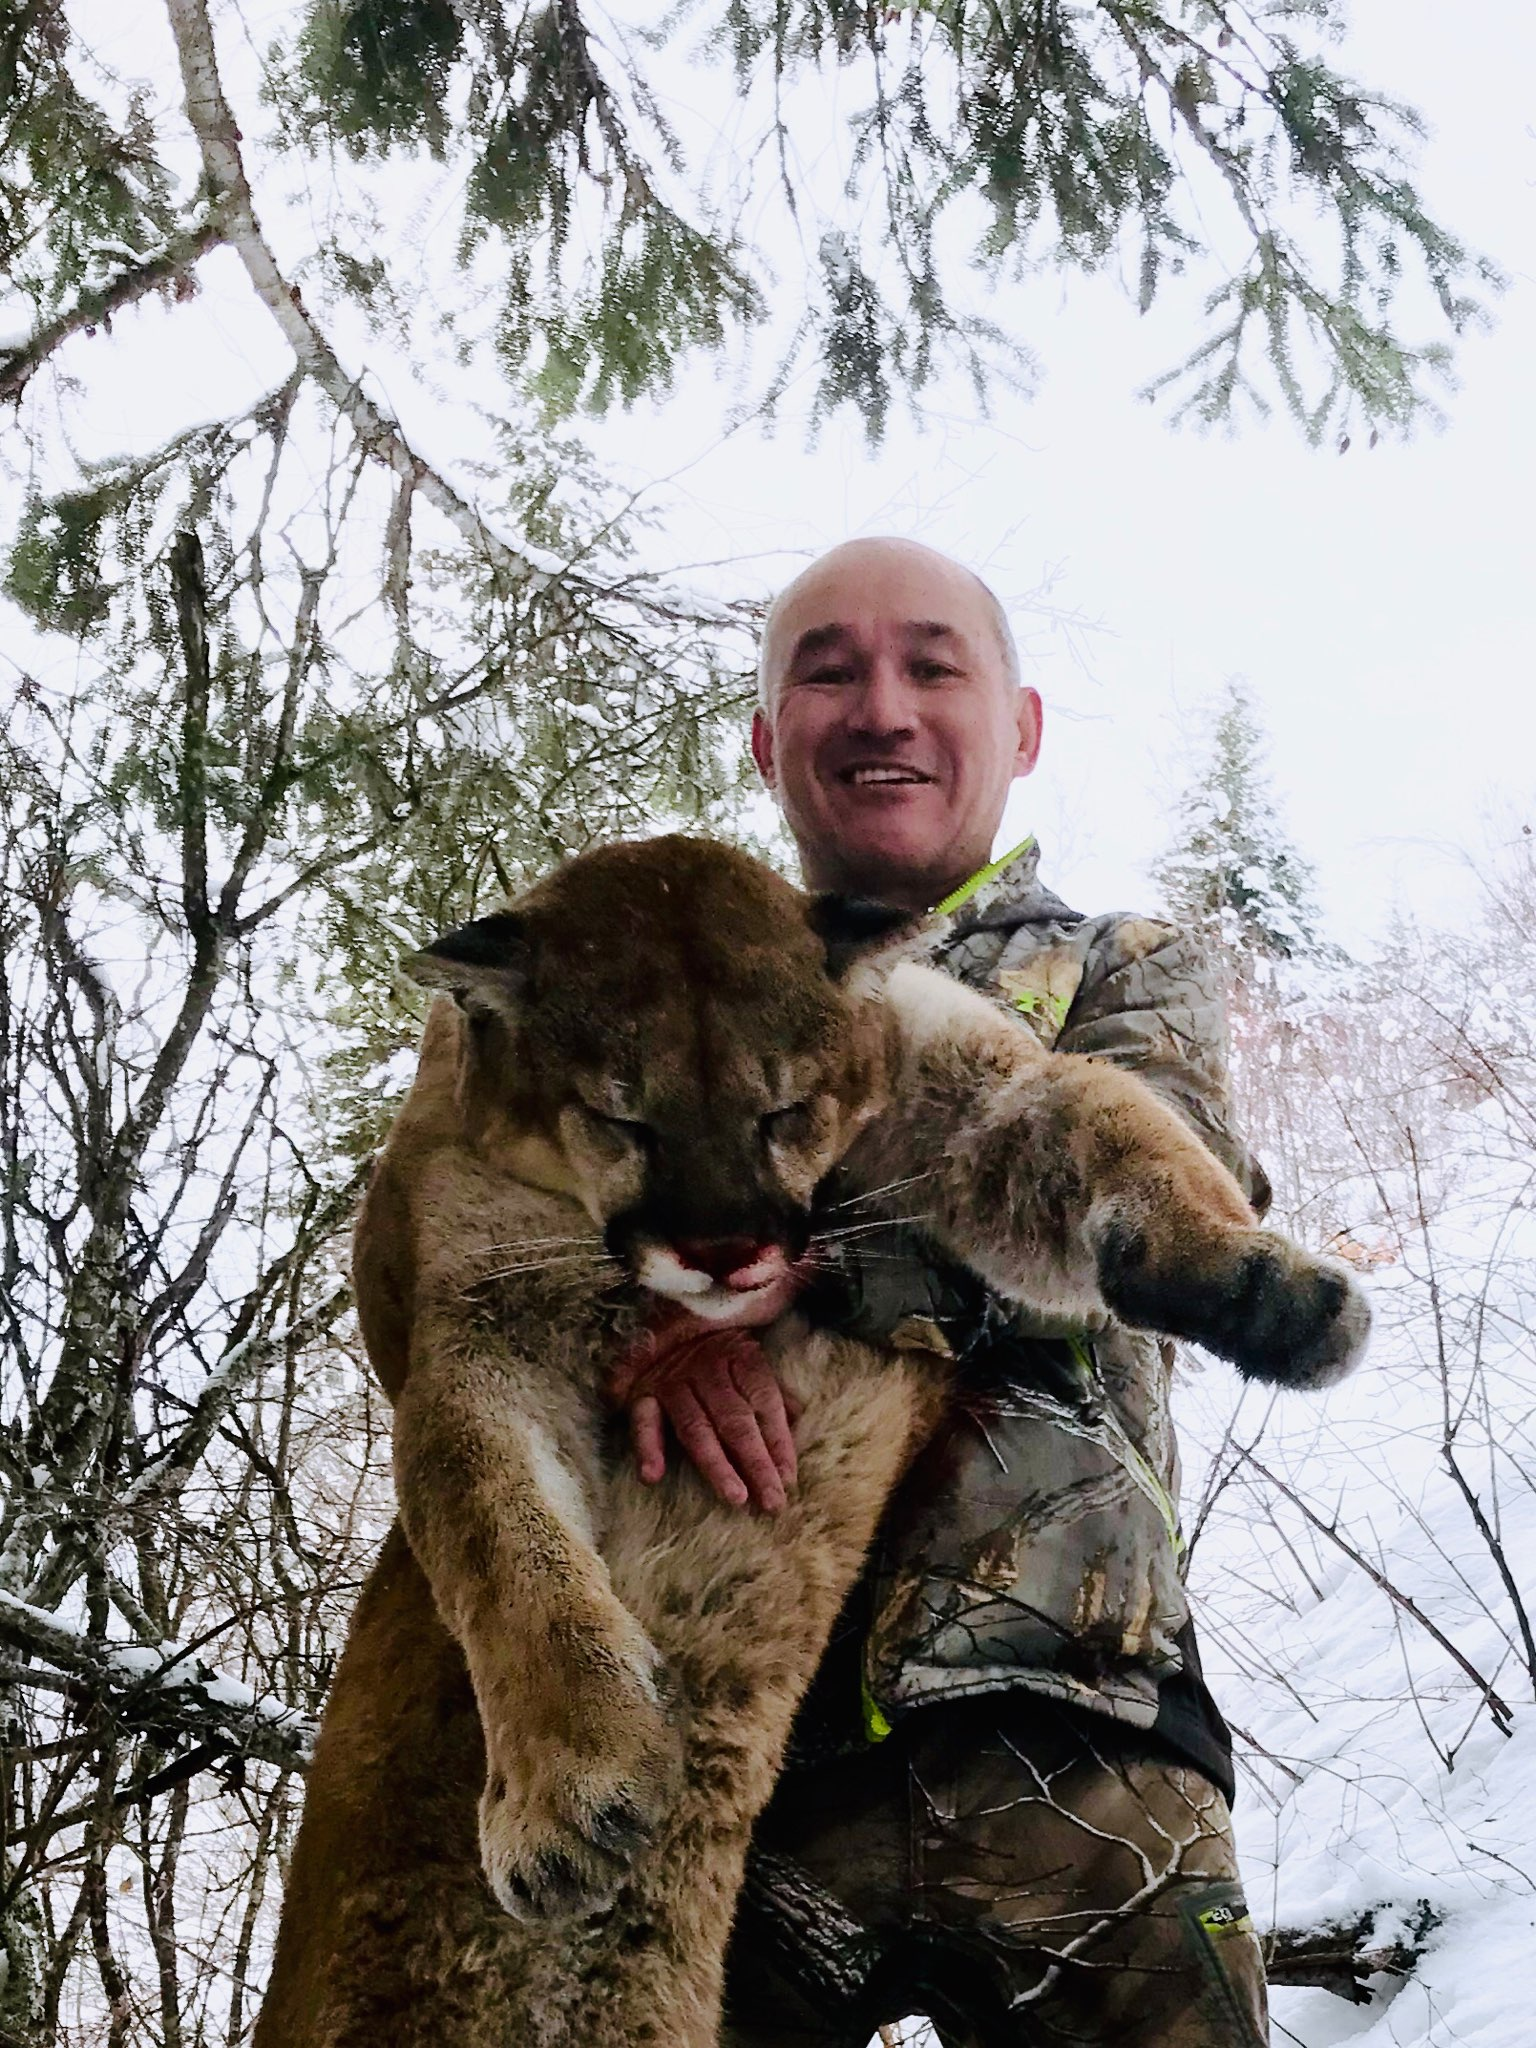 A man in a forest during winter holding a mountain lion he harvested during a hunt with Bungalow Outfitters